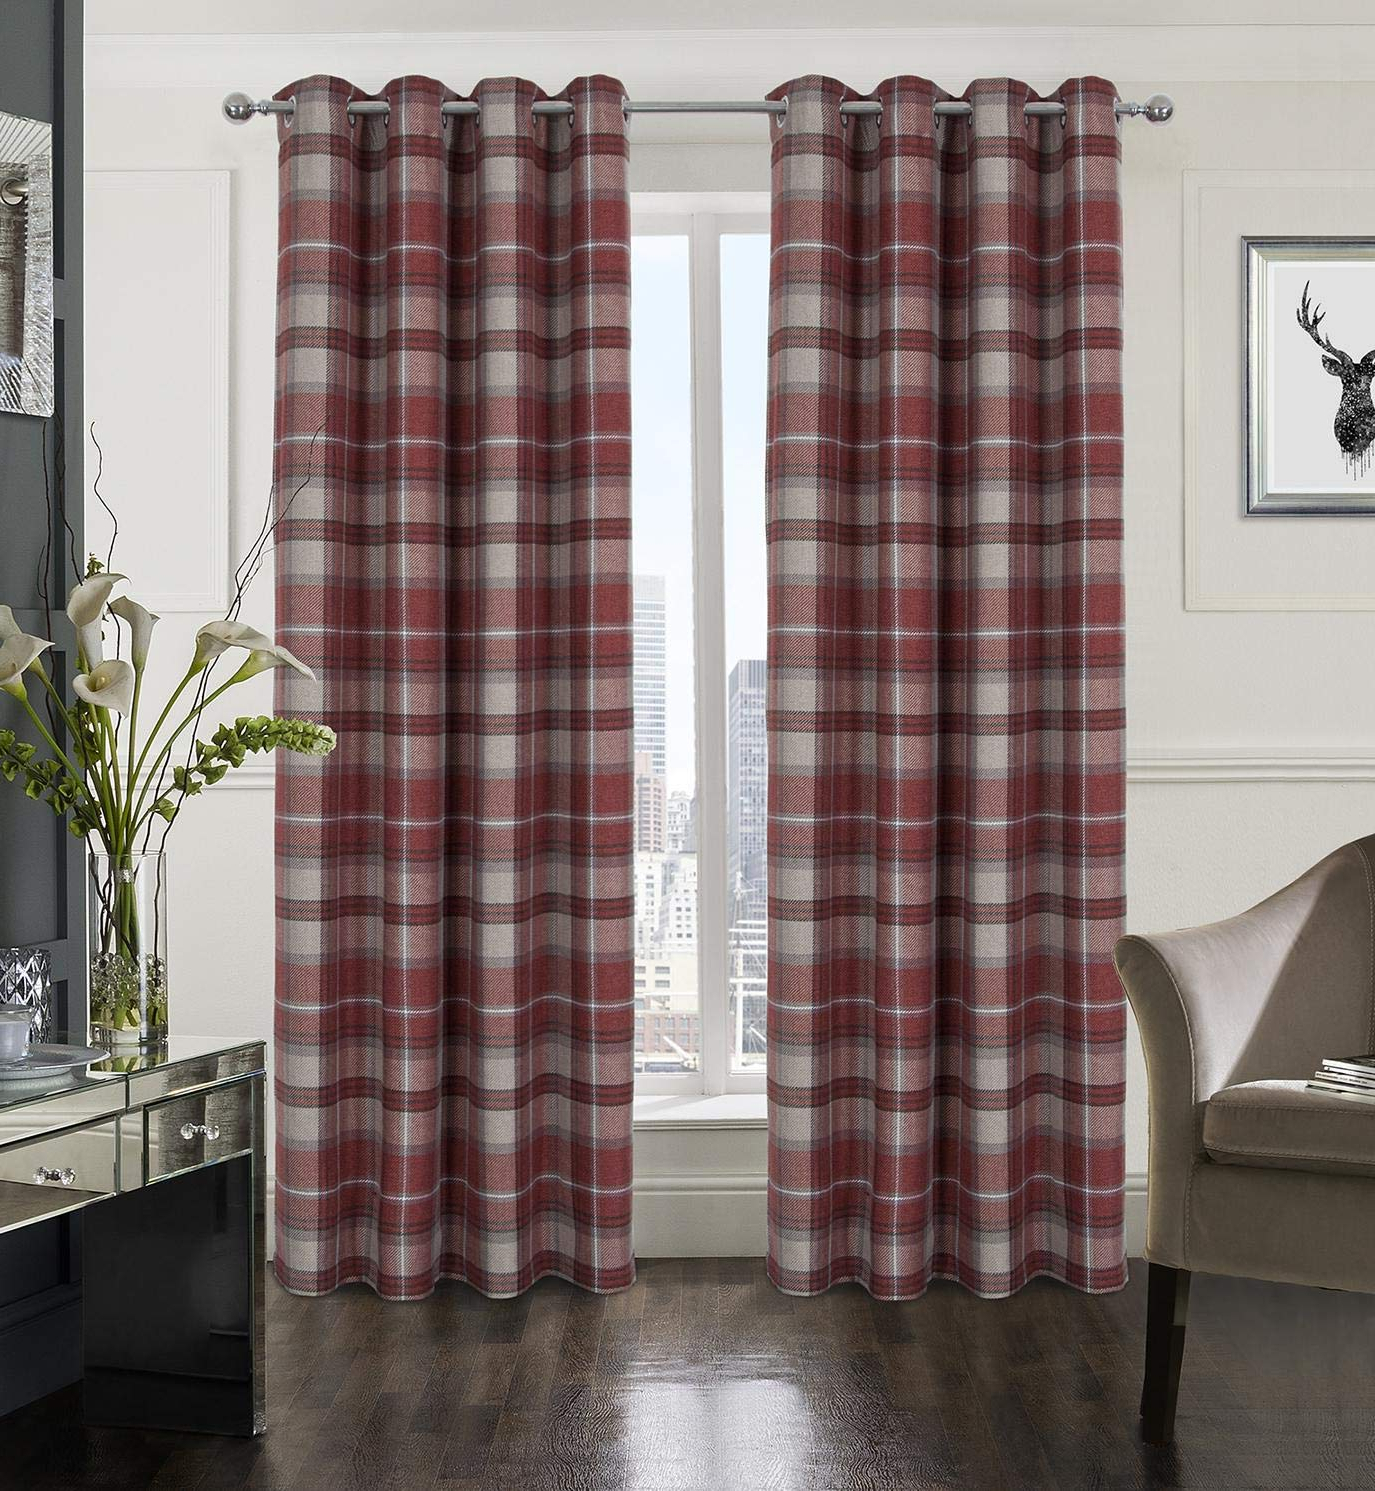 Burgundy Cotton Blend Classic Checkered Decorative Window Curtains In Most Recent Alexandra Cole Plaid Tartan Check Modern Classic Window Treatment Curtain/drapes For Living Room 2 Panels Red 54x84 Inch (View 19 of 20)